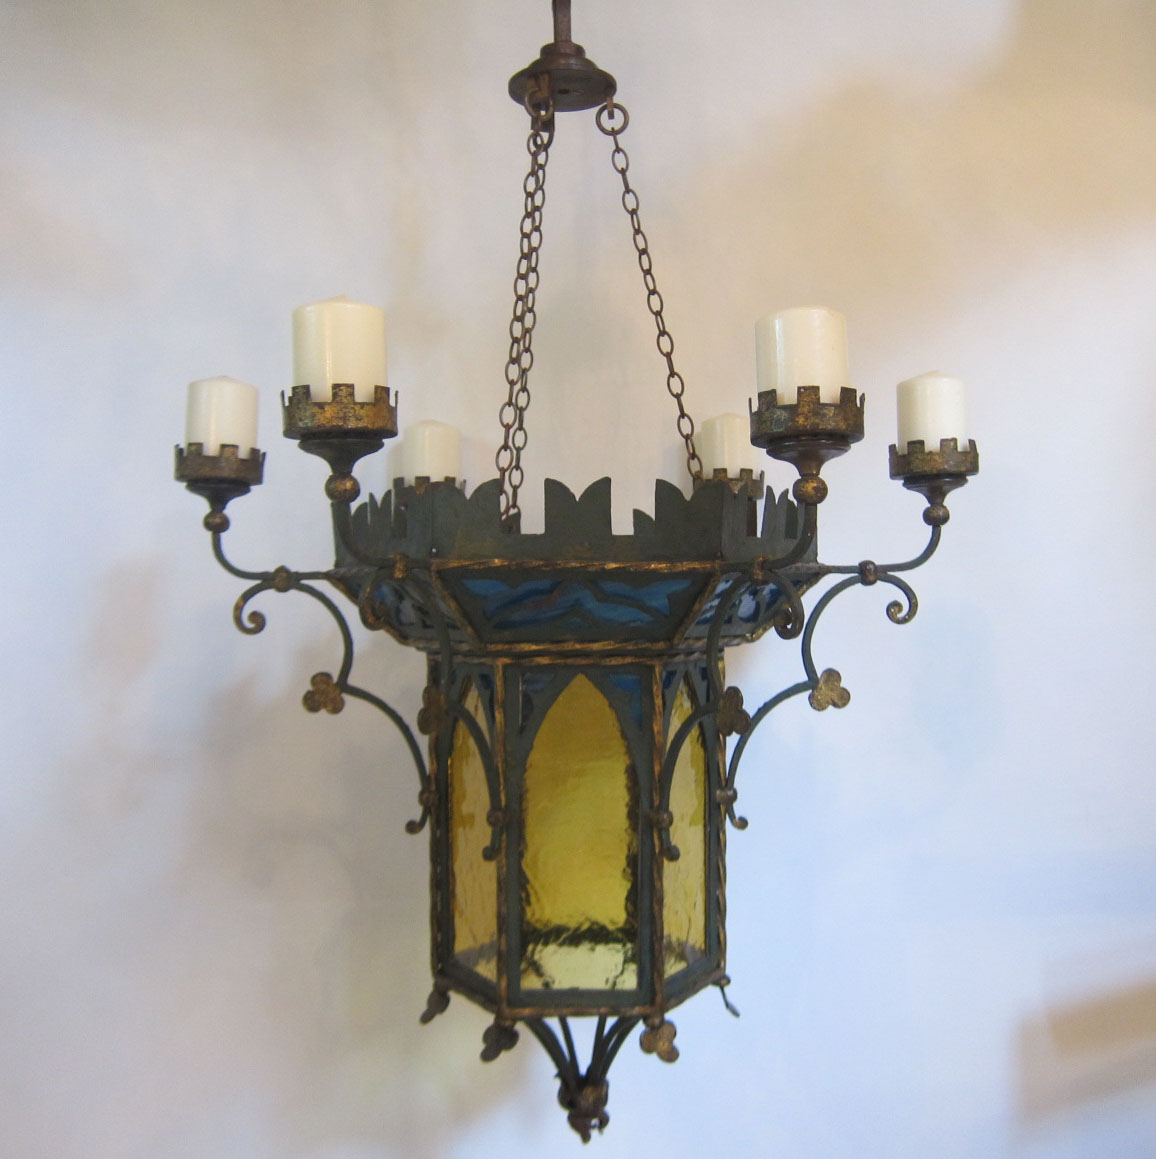 Gothic Ceiling Light Exeter Antique Lighting Company